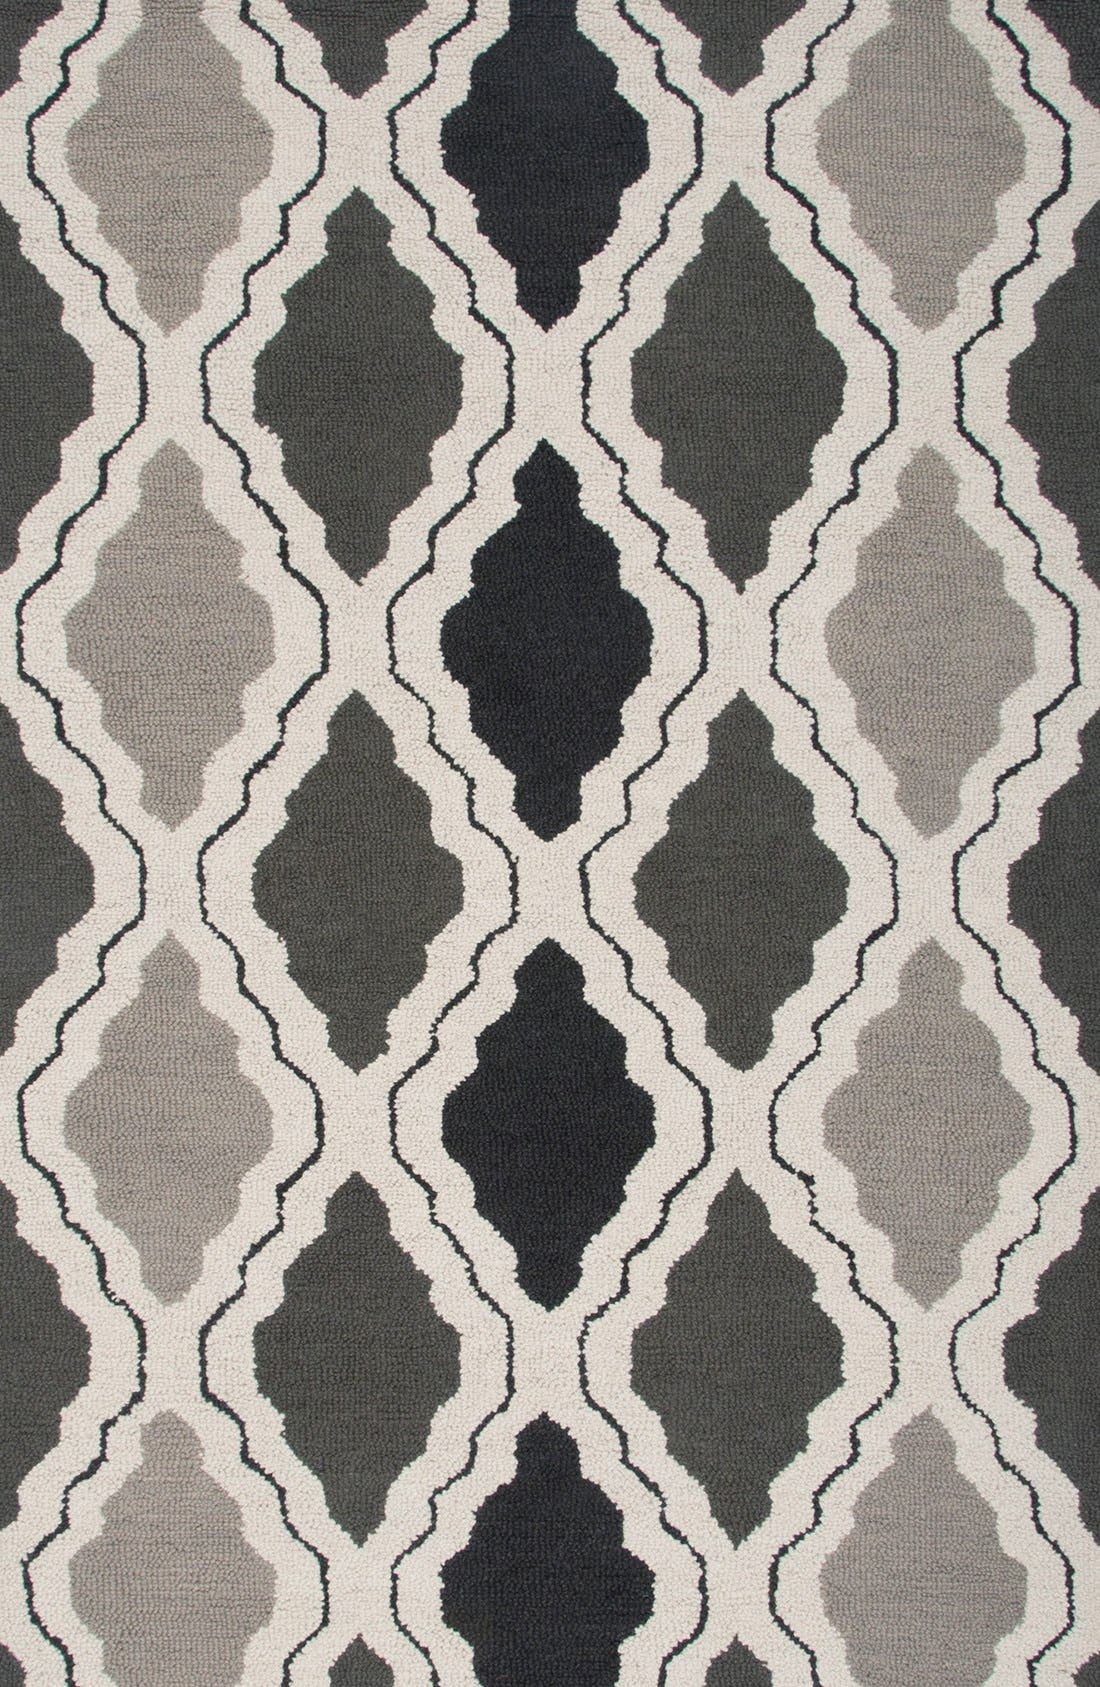 'Ogee' Wool Area Rug,                         Main,                         color, 030